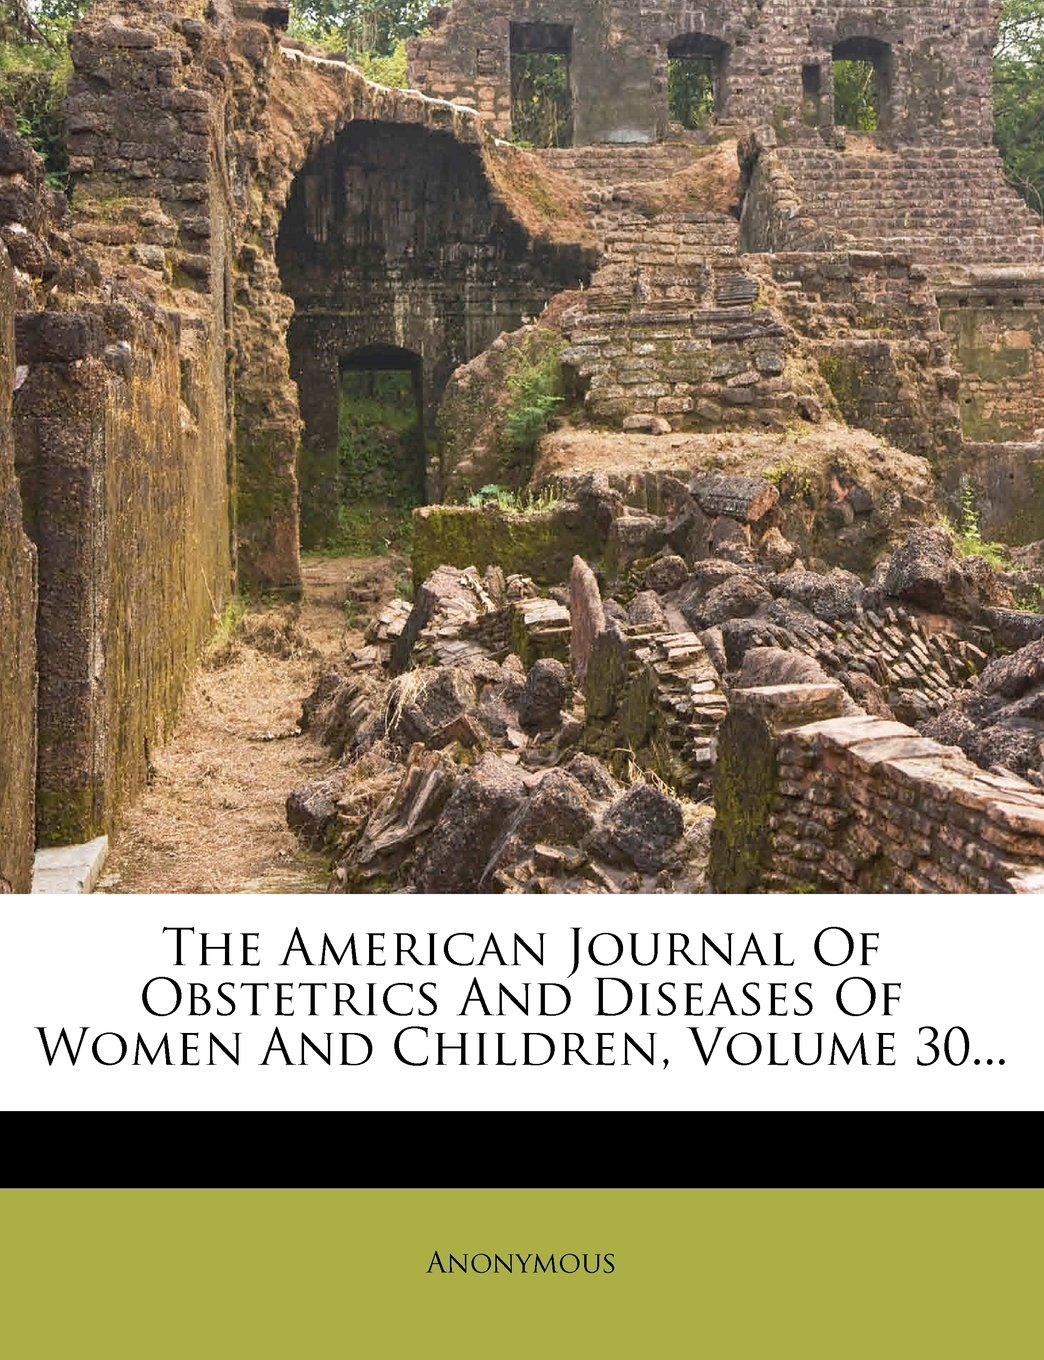 Download The American Journal Of Obstetrics And Diseases Of Women And Children, Volume 30... PDF